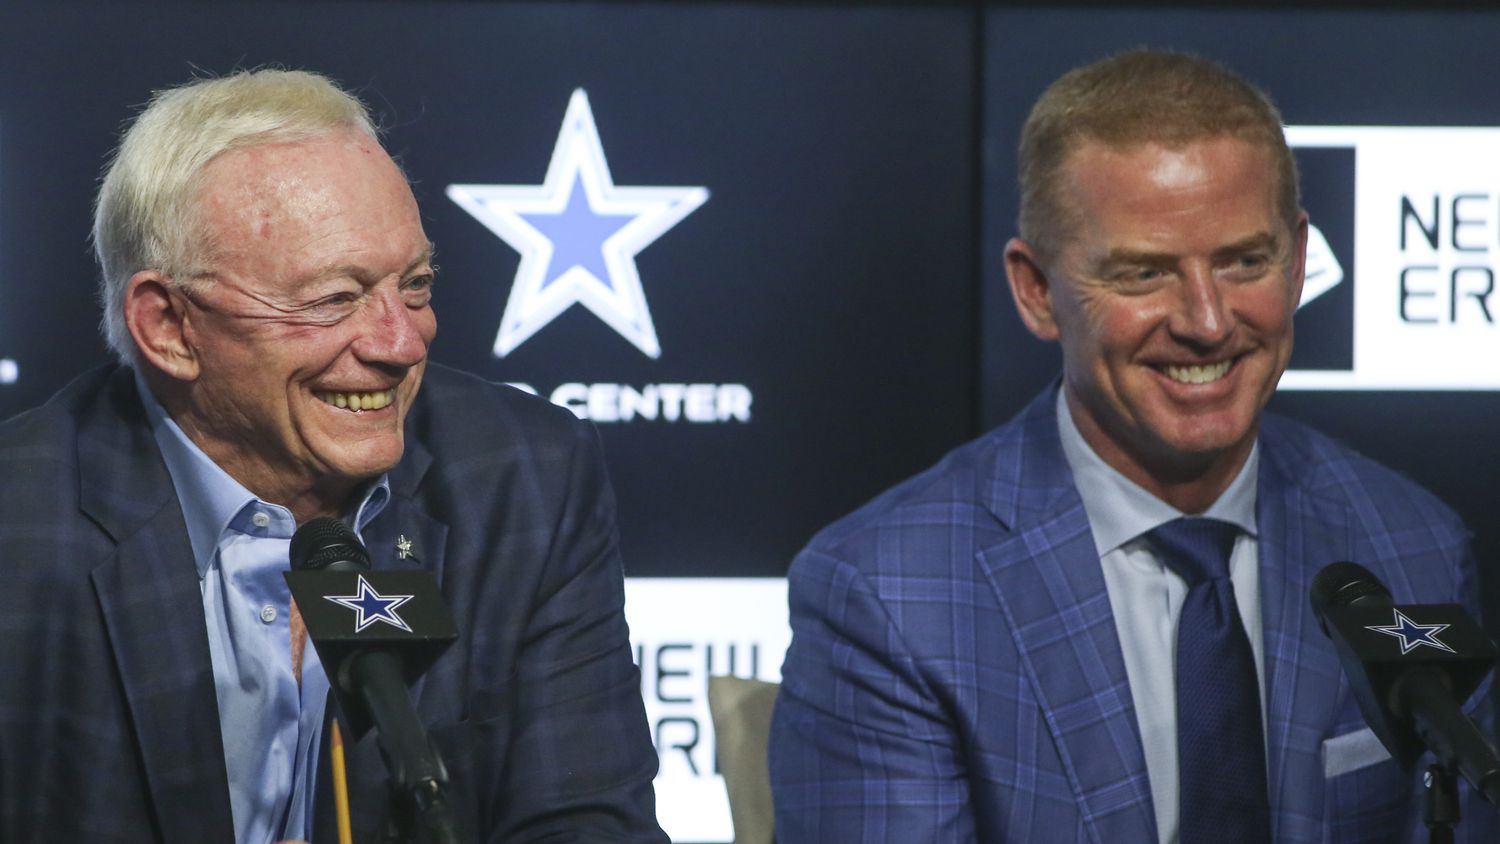 Dallas Cowboys owner Jerry Jones, left, and head coach Jason Garrett laugh at a joke by executive vice president Stephen Jones, not pictured, while speaking to reporters after the second night of the NFL Draft on Friday, April 26, 2019 at The Star in Frisco, Texas.